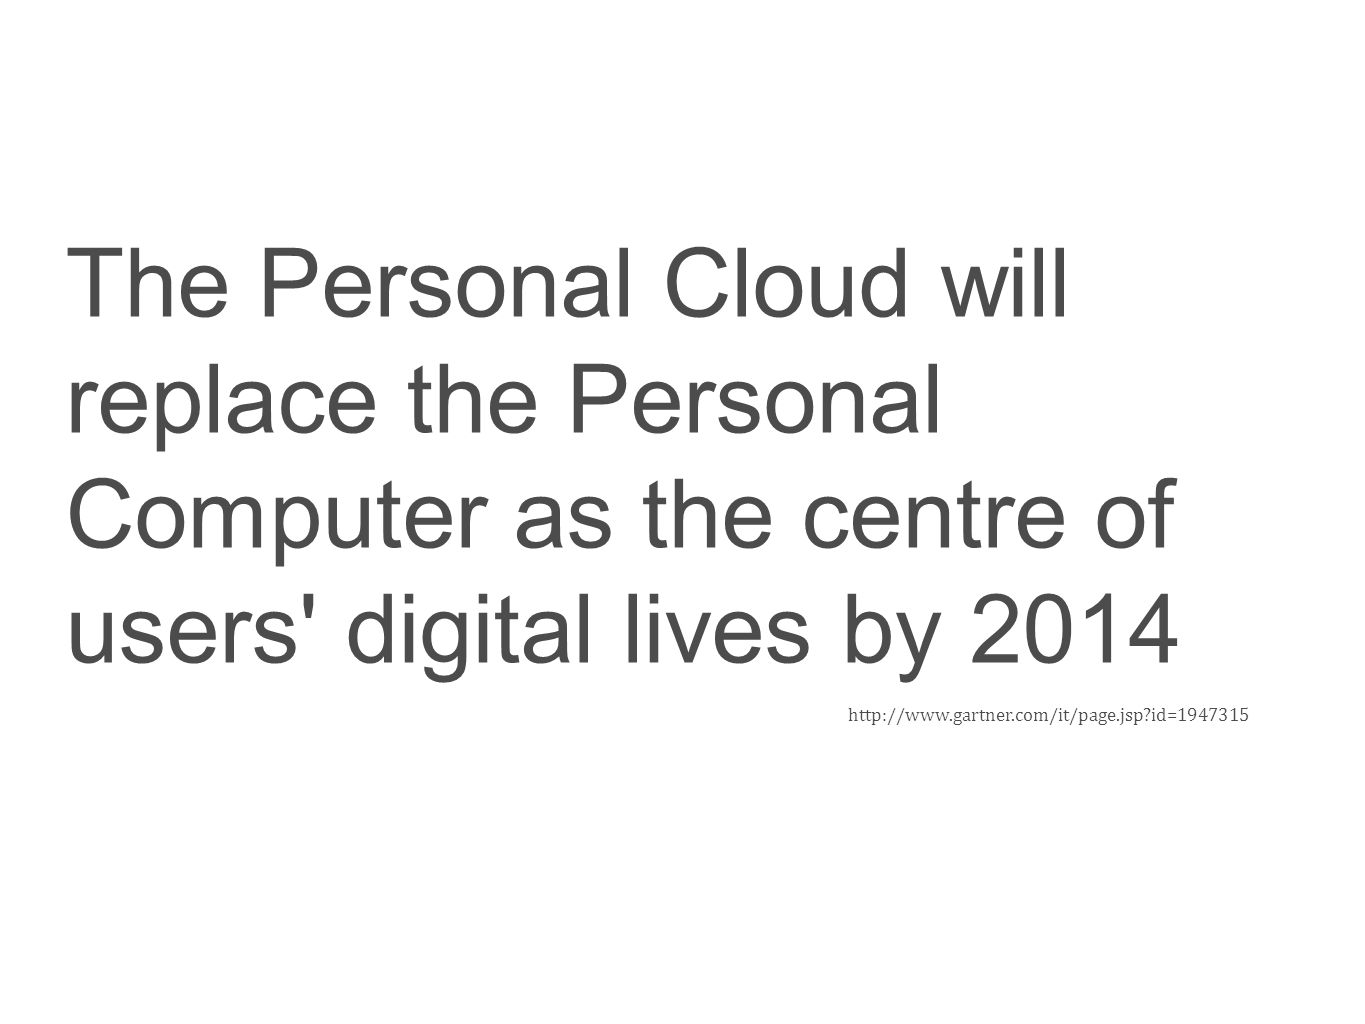 The Personal Cloud will replace the Personal Computer as the centre of users' digital lives by 2014 http://www.gartner.com/it/page.jsp?id=1947315